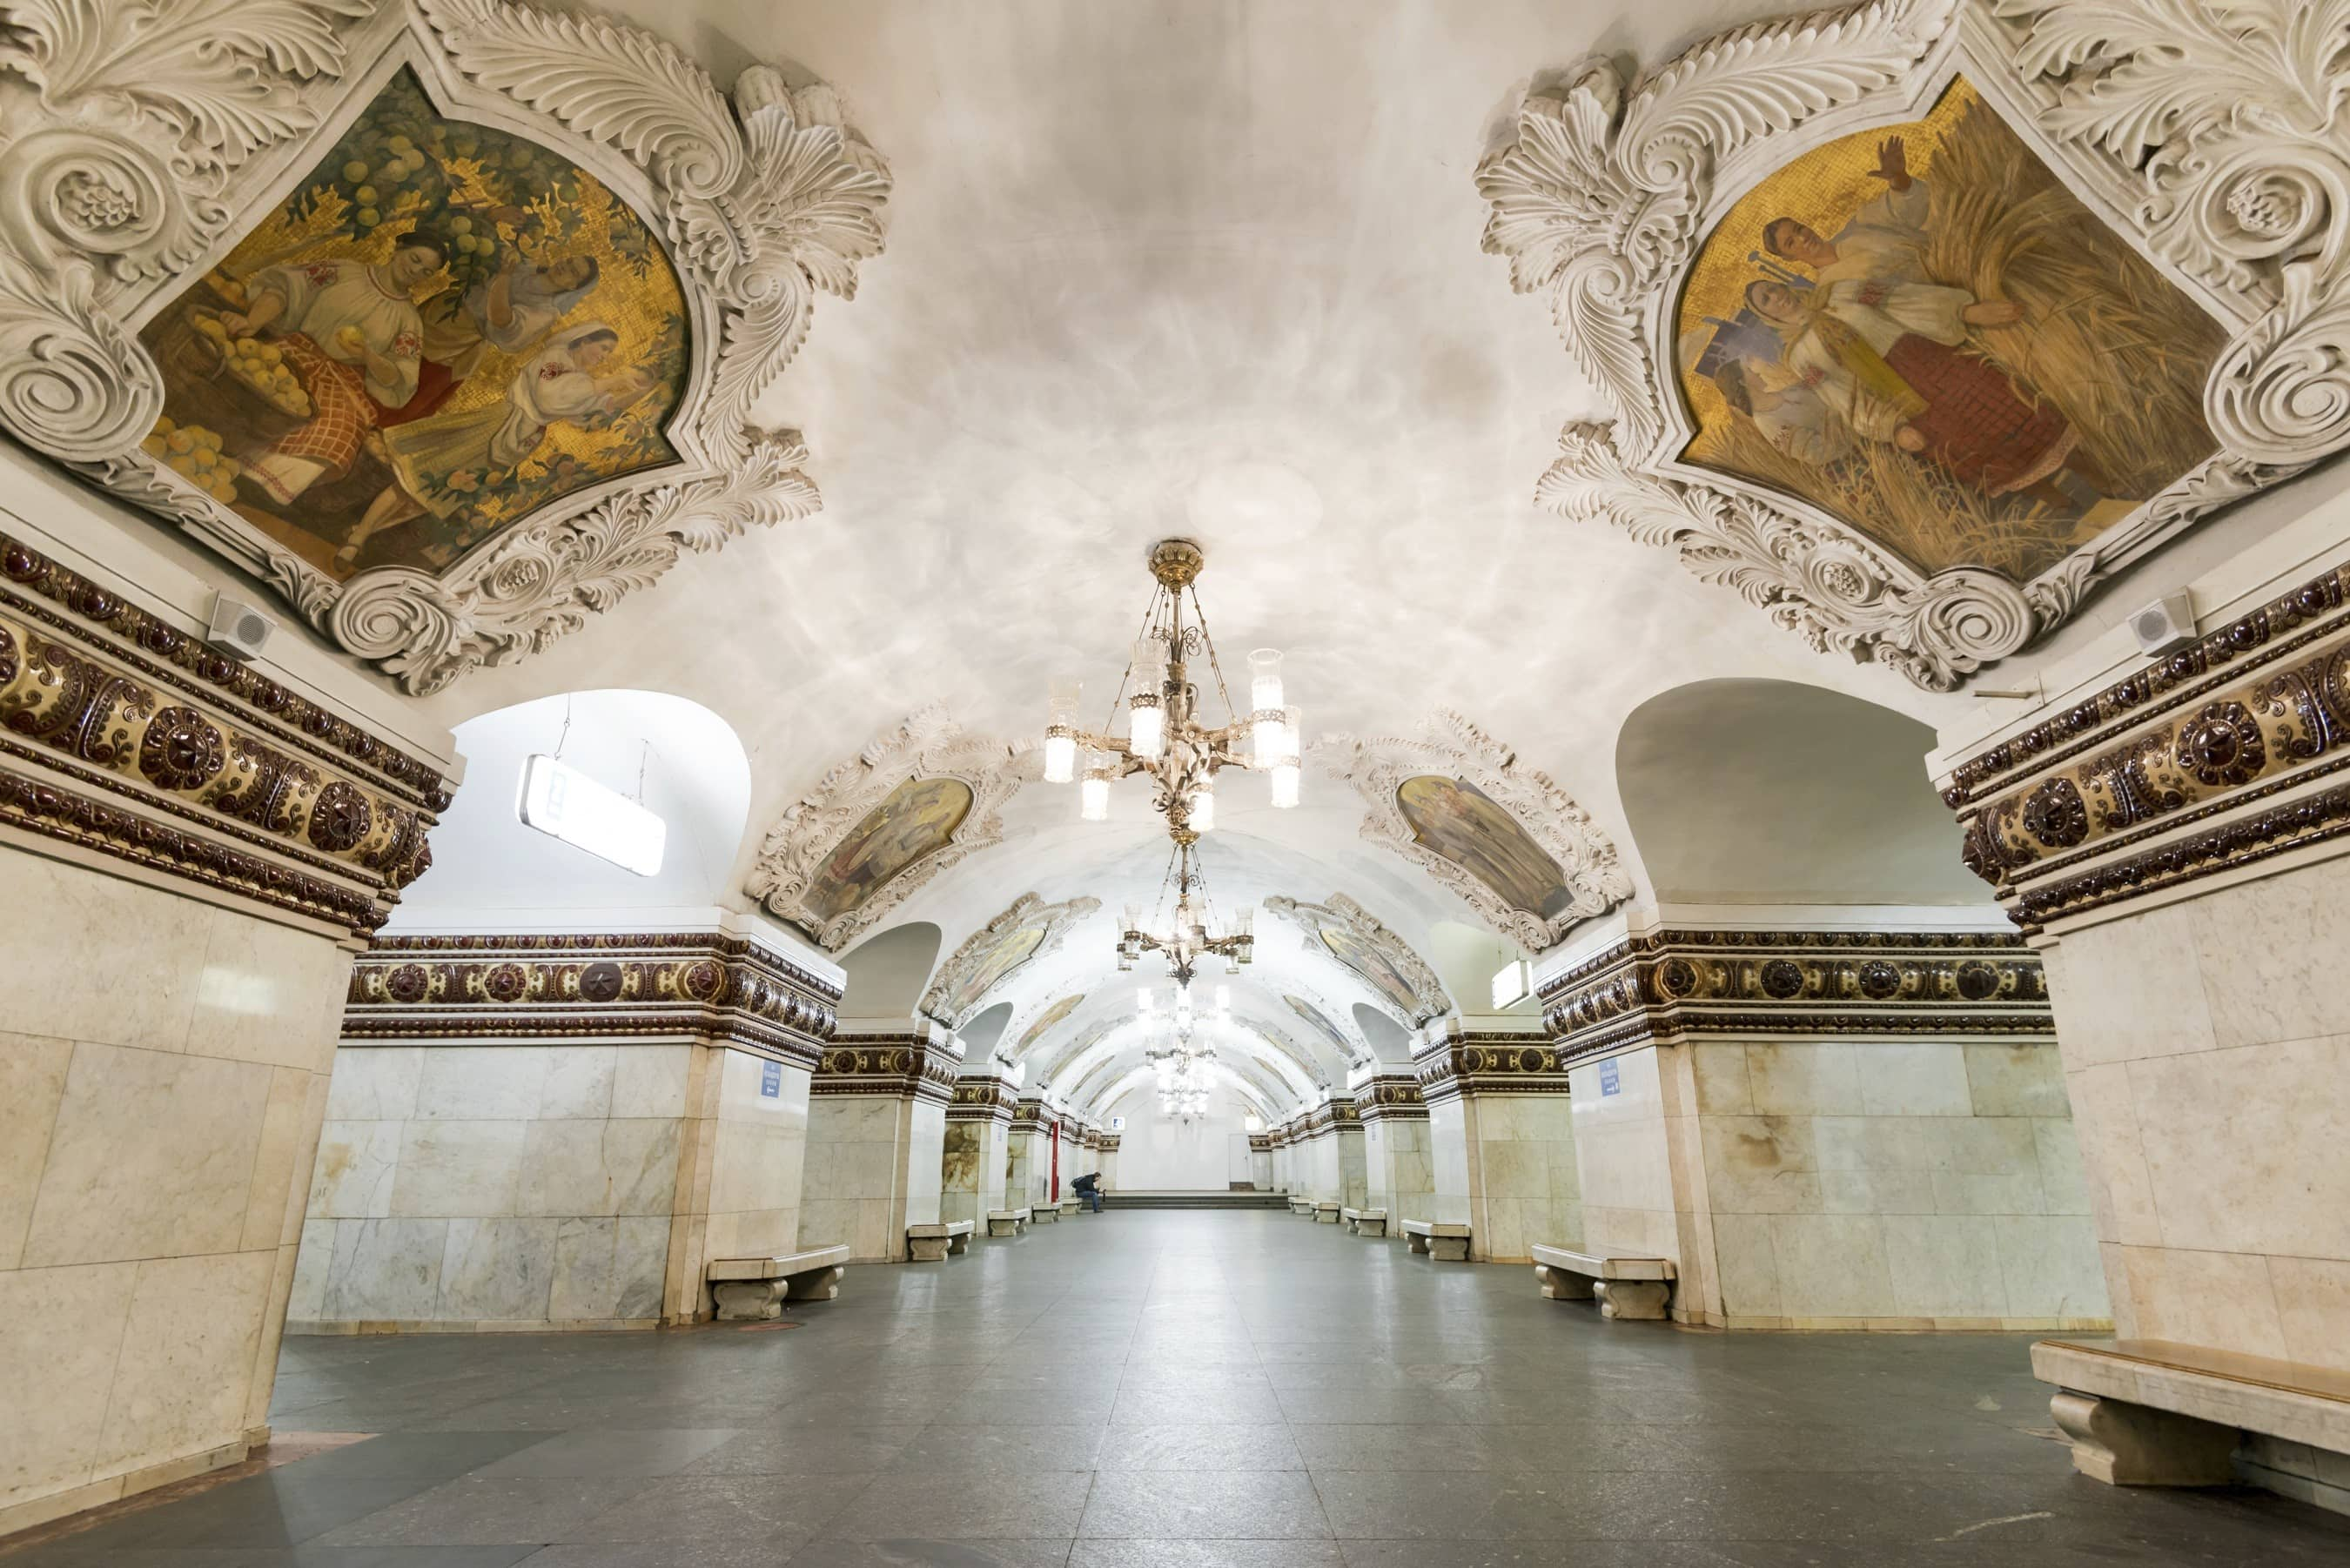 Tiling Pictures More Underground Super Cool Subways Ebookers Blog